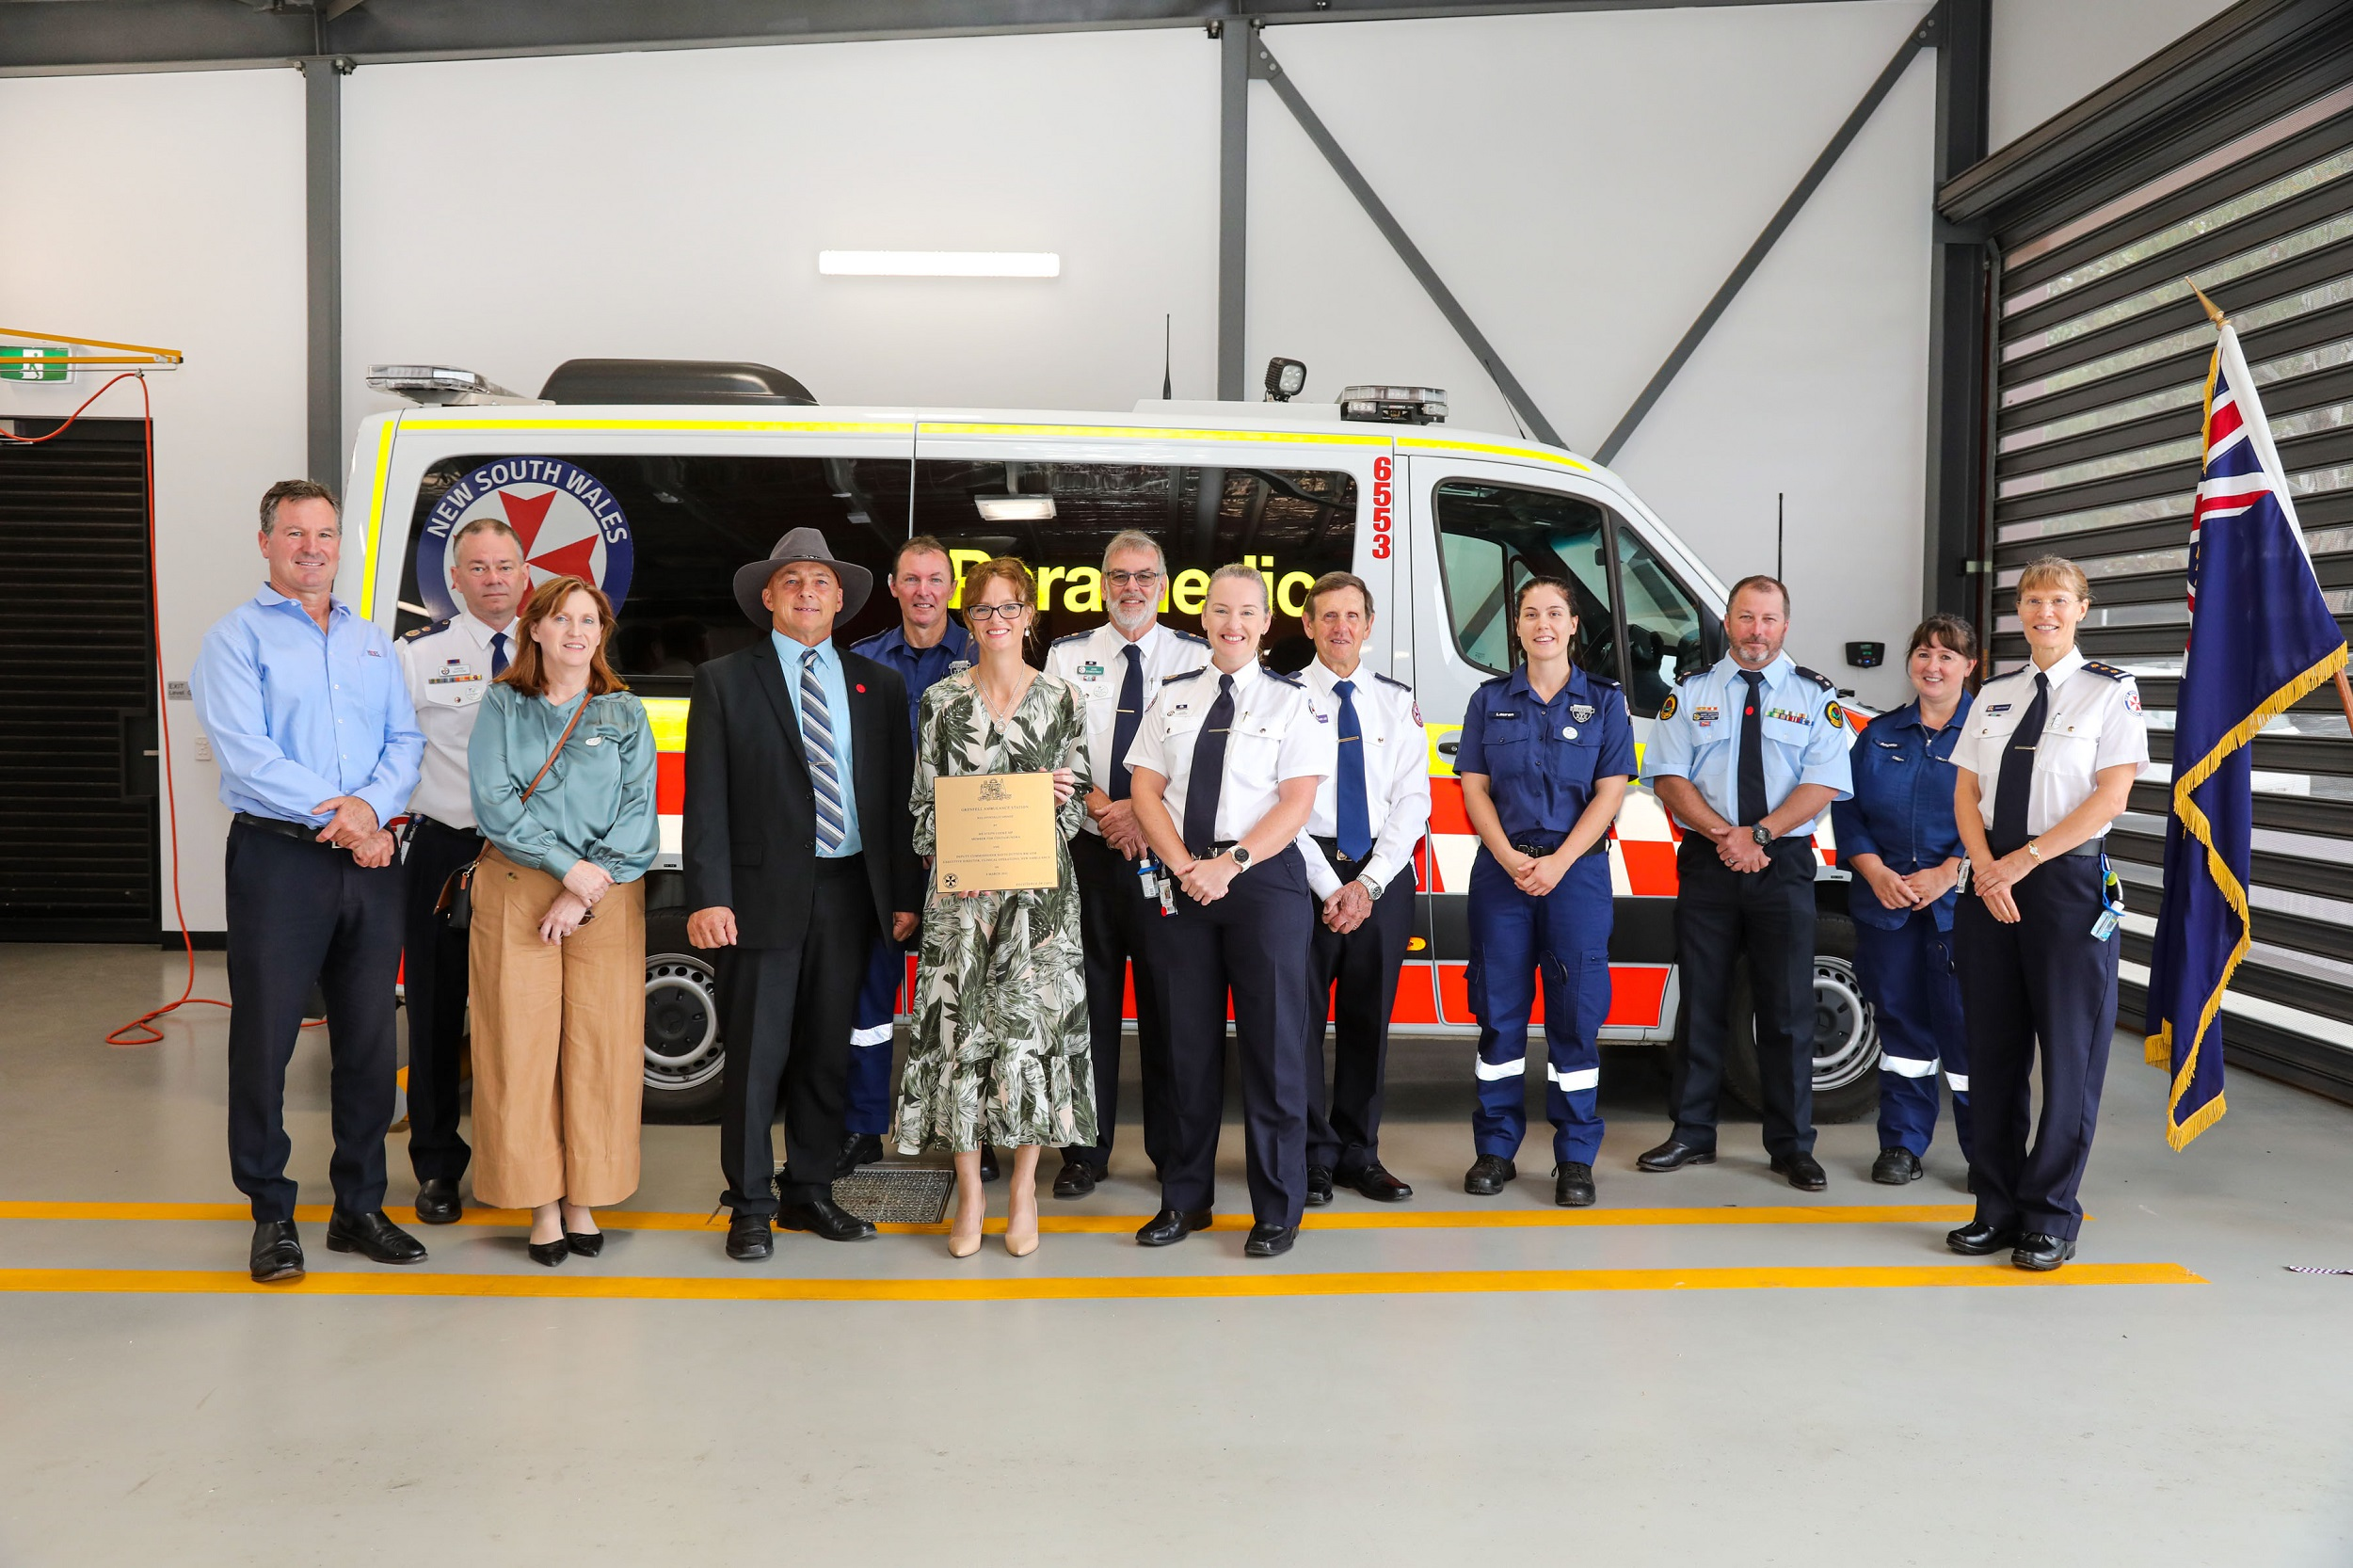 David Hines, David Dutton, Annabelle Dunlop, Weddin Shire Mayor Mark Liebich, paramedic Andrew, Steph Cooke MP, John Stonestreet, Clare Lorenzen, Rev. Richard, Lauren, Barry, and Penelope Child stand in front of an ambulance and smile at the camera.